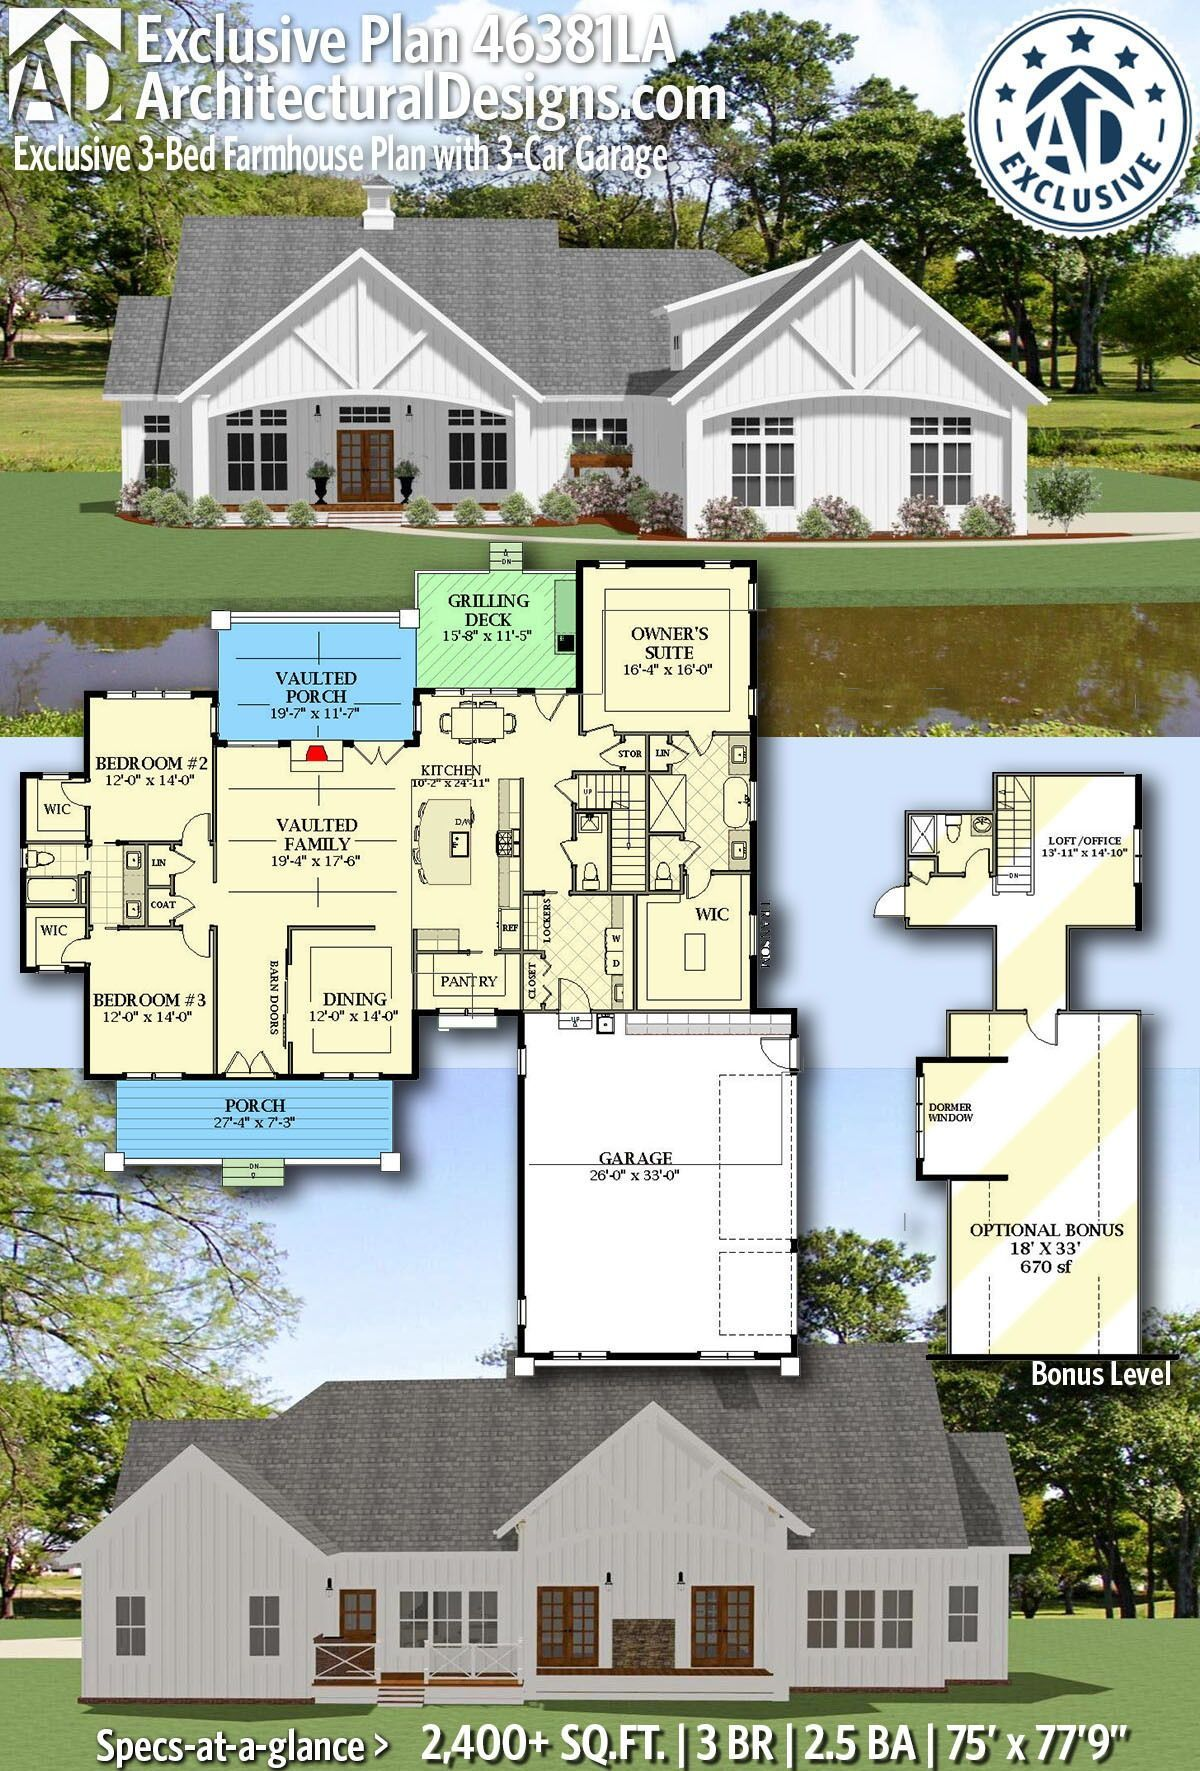 Plan 46381la Exclusive 3 Bed Farmhouse Plan For Country Living At Its Finest In 2020 Farmhouse Plans House Plans Farmhouse Craftsman House Plans